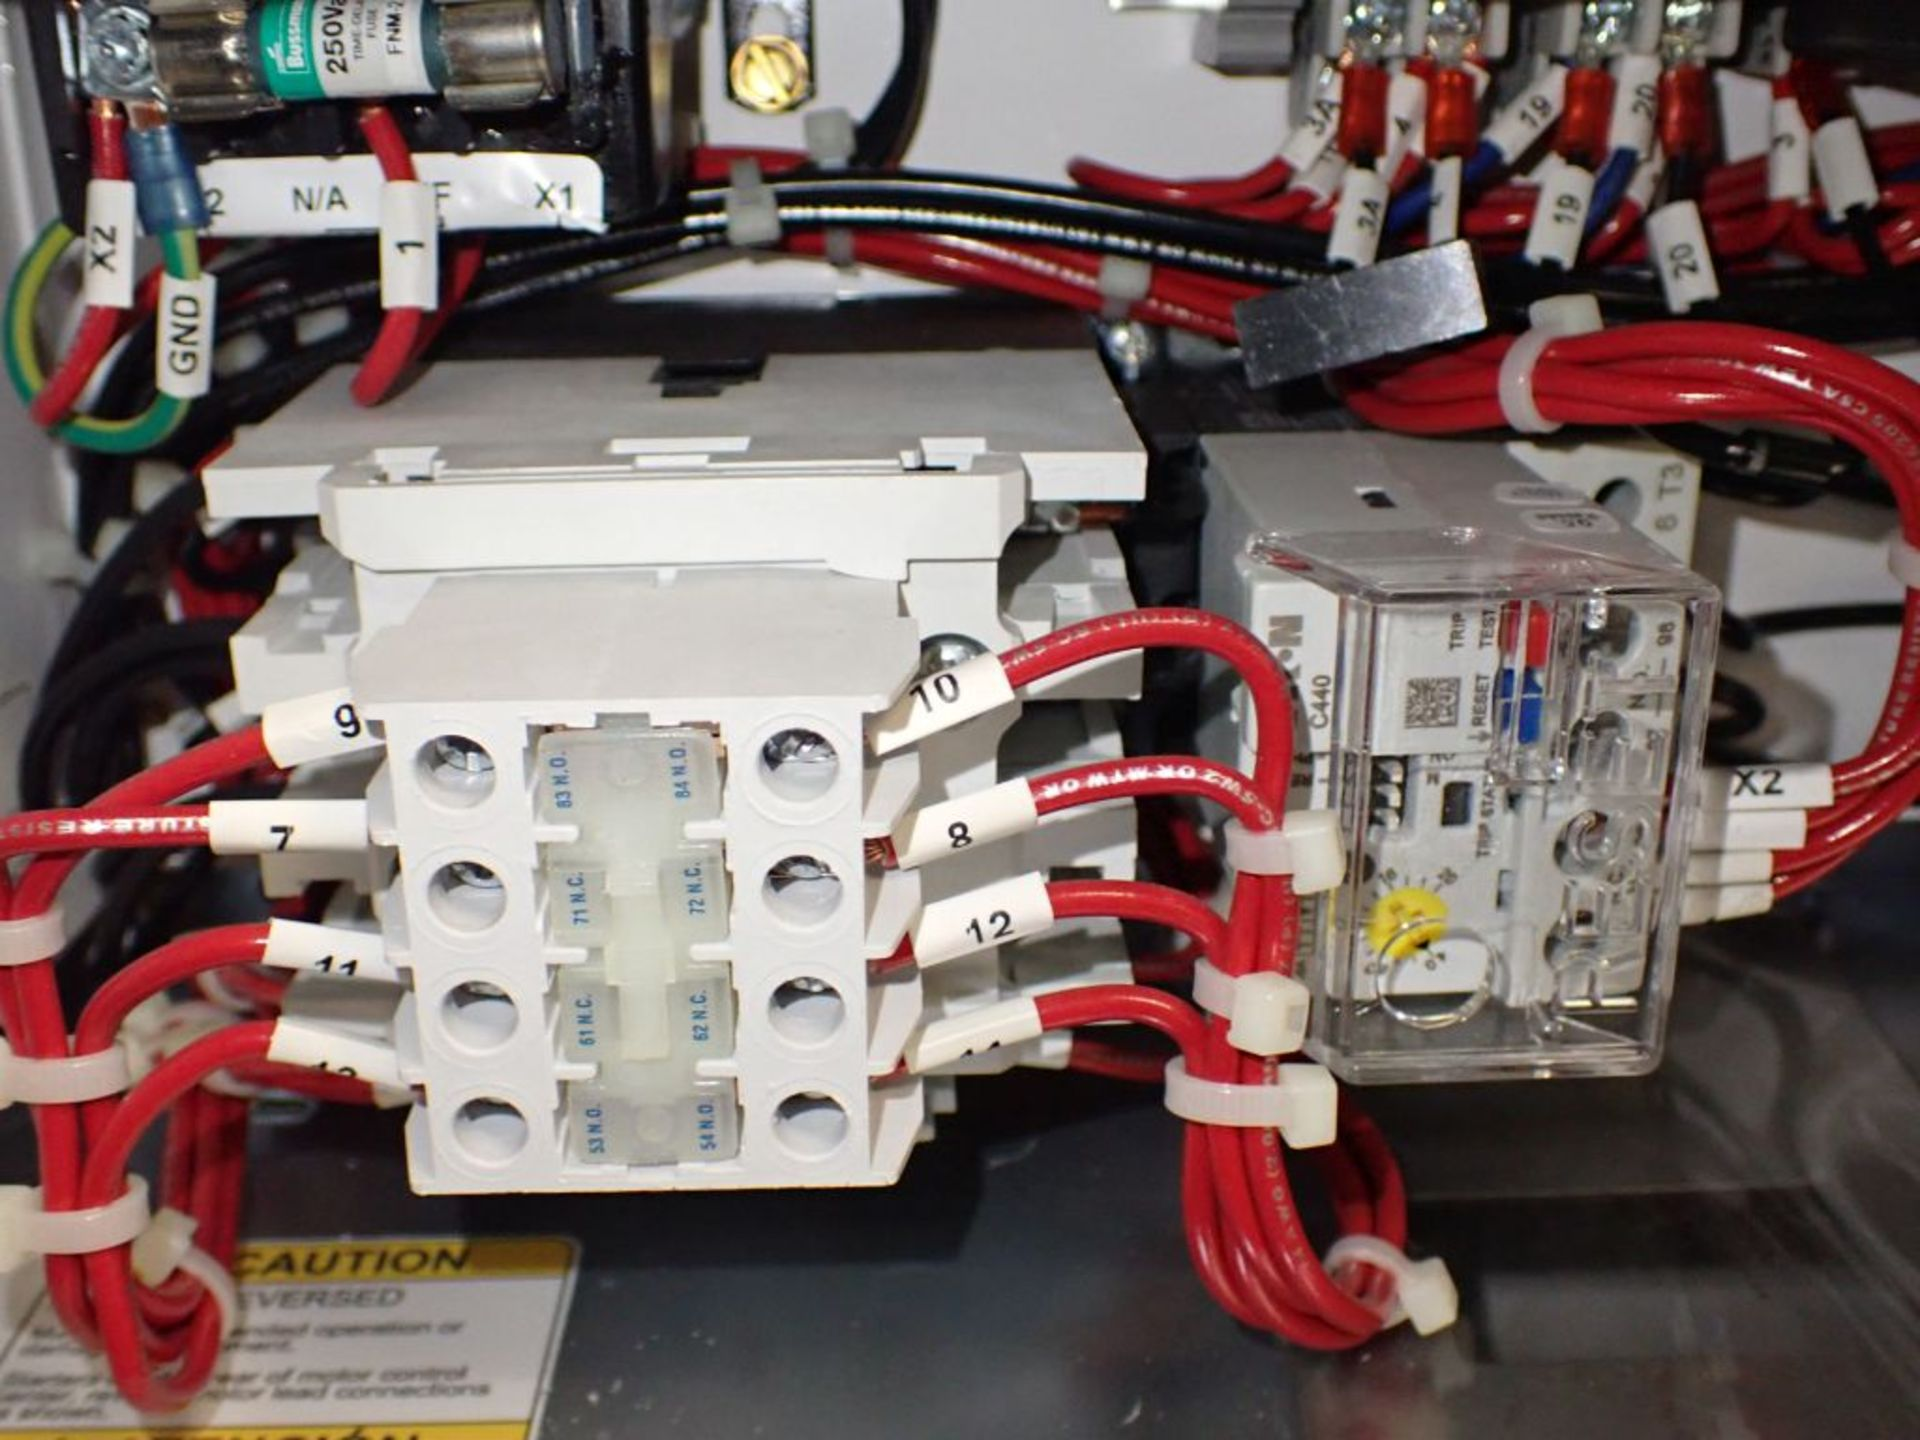 Eaton Freedom 2100 Series Motor Control Center | (11) F206-30A-10HP; (5) F206-15A-10HP; (1) SVX900- - Image 34 of 102